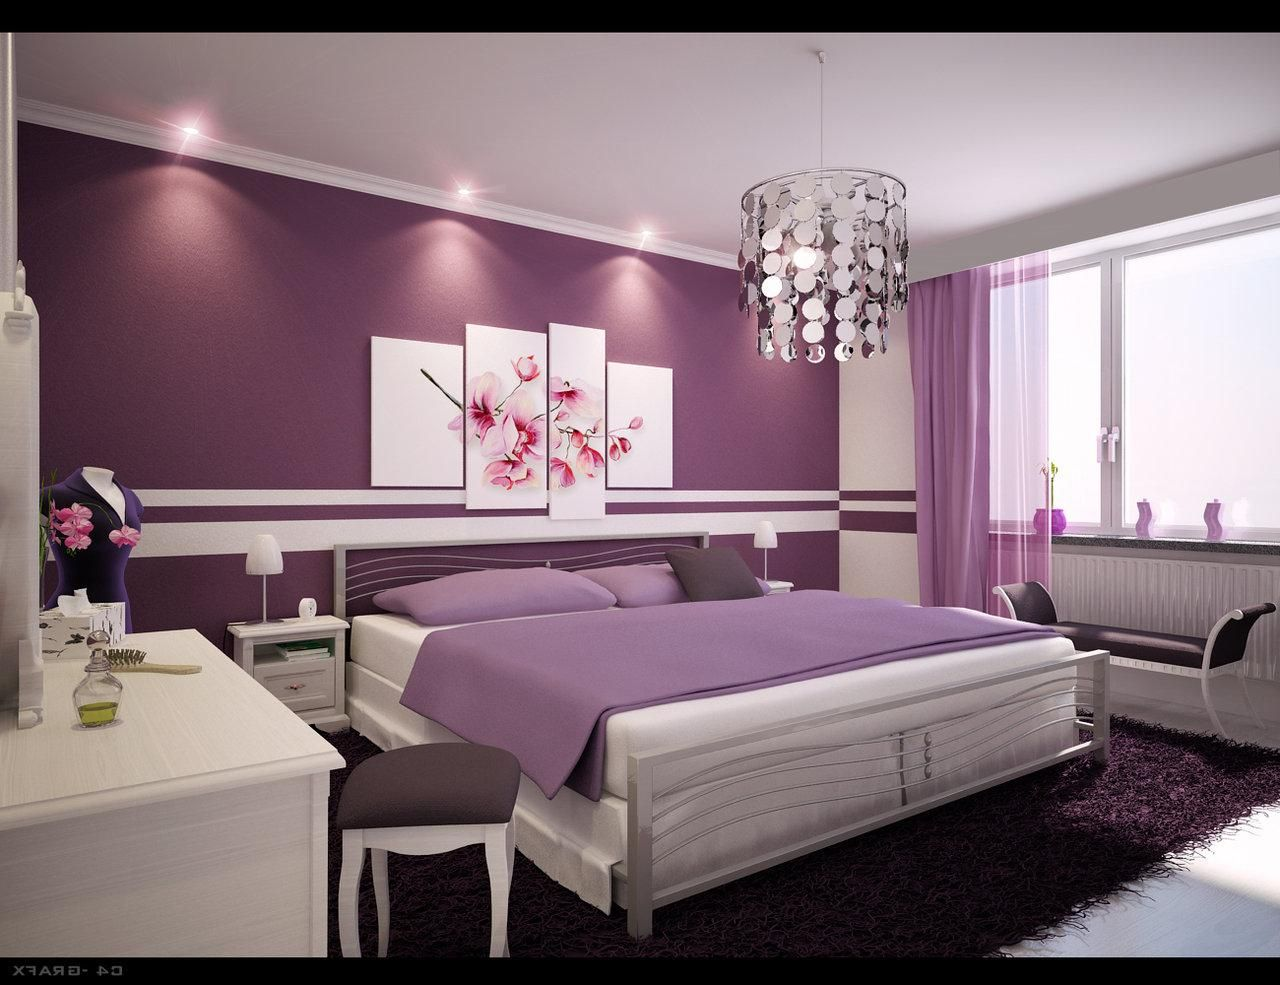 Elegant Contemporary Bedroom Decorating Ideas Modern Vintage Home Design .